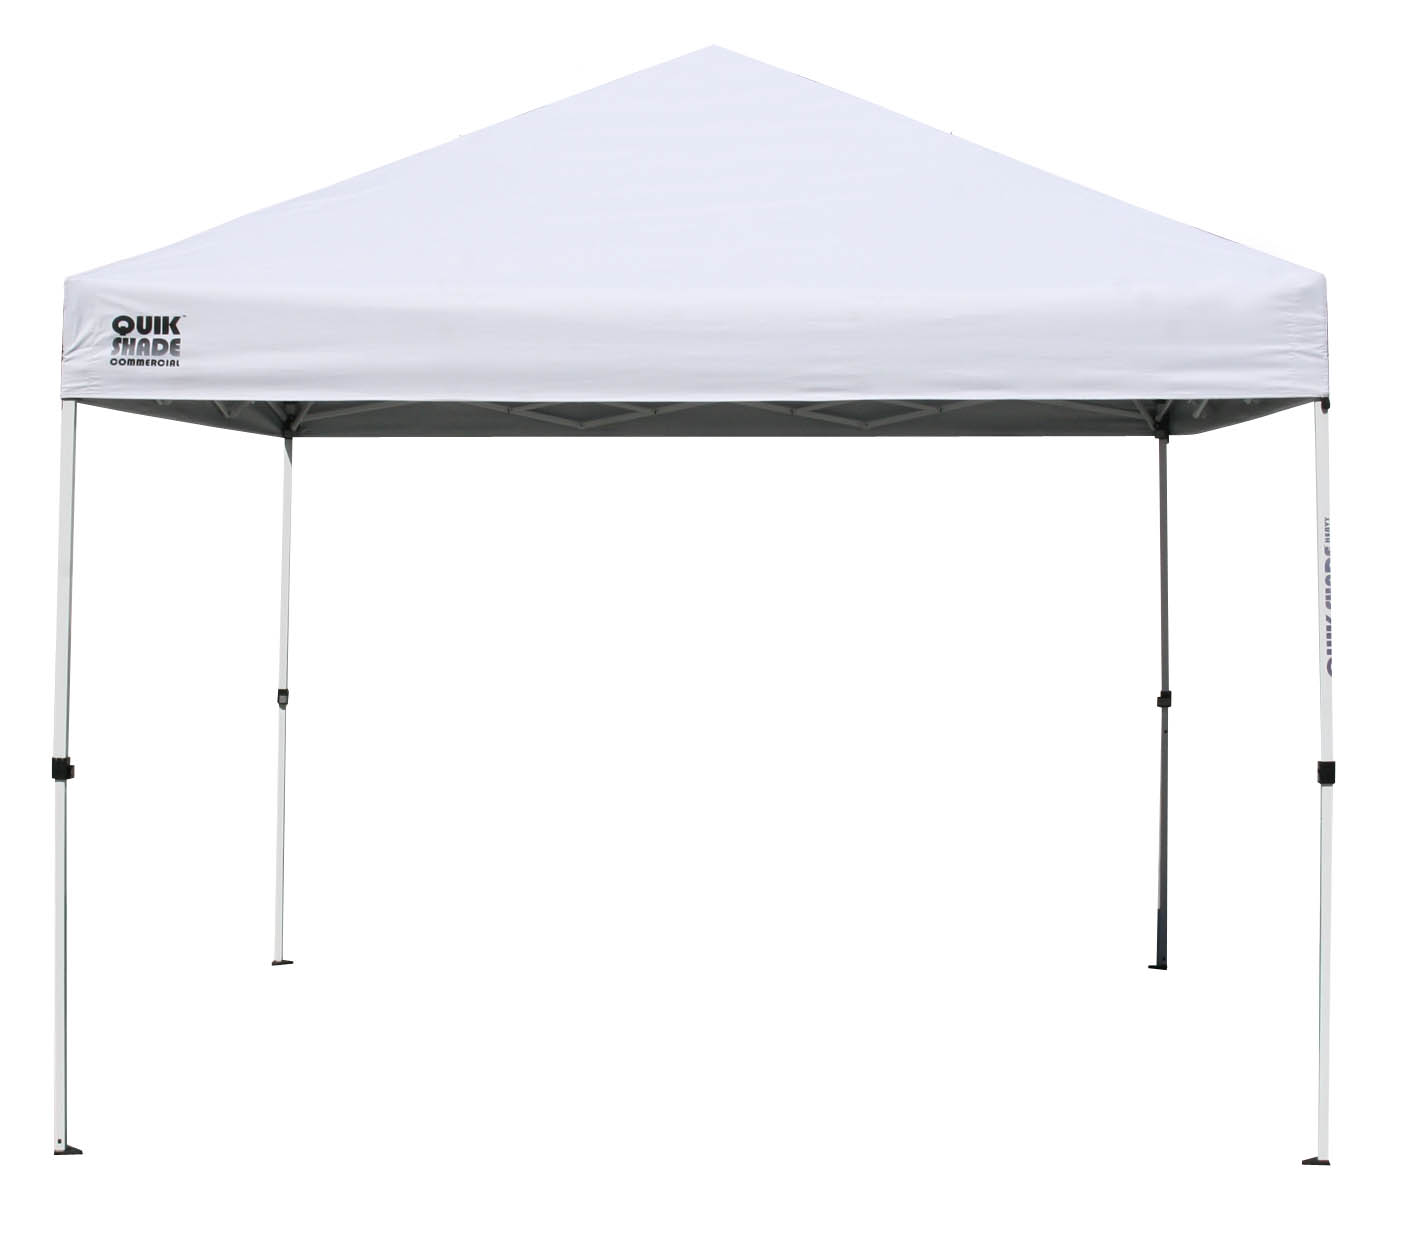 Quik Shade 10' X 10' Commercial 100